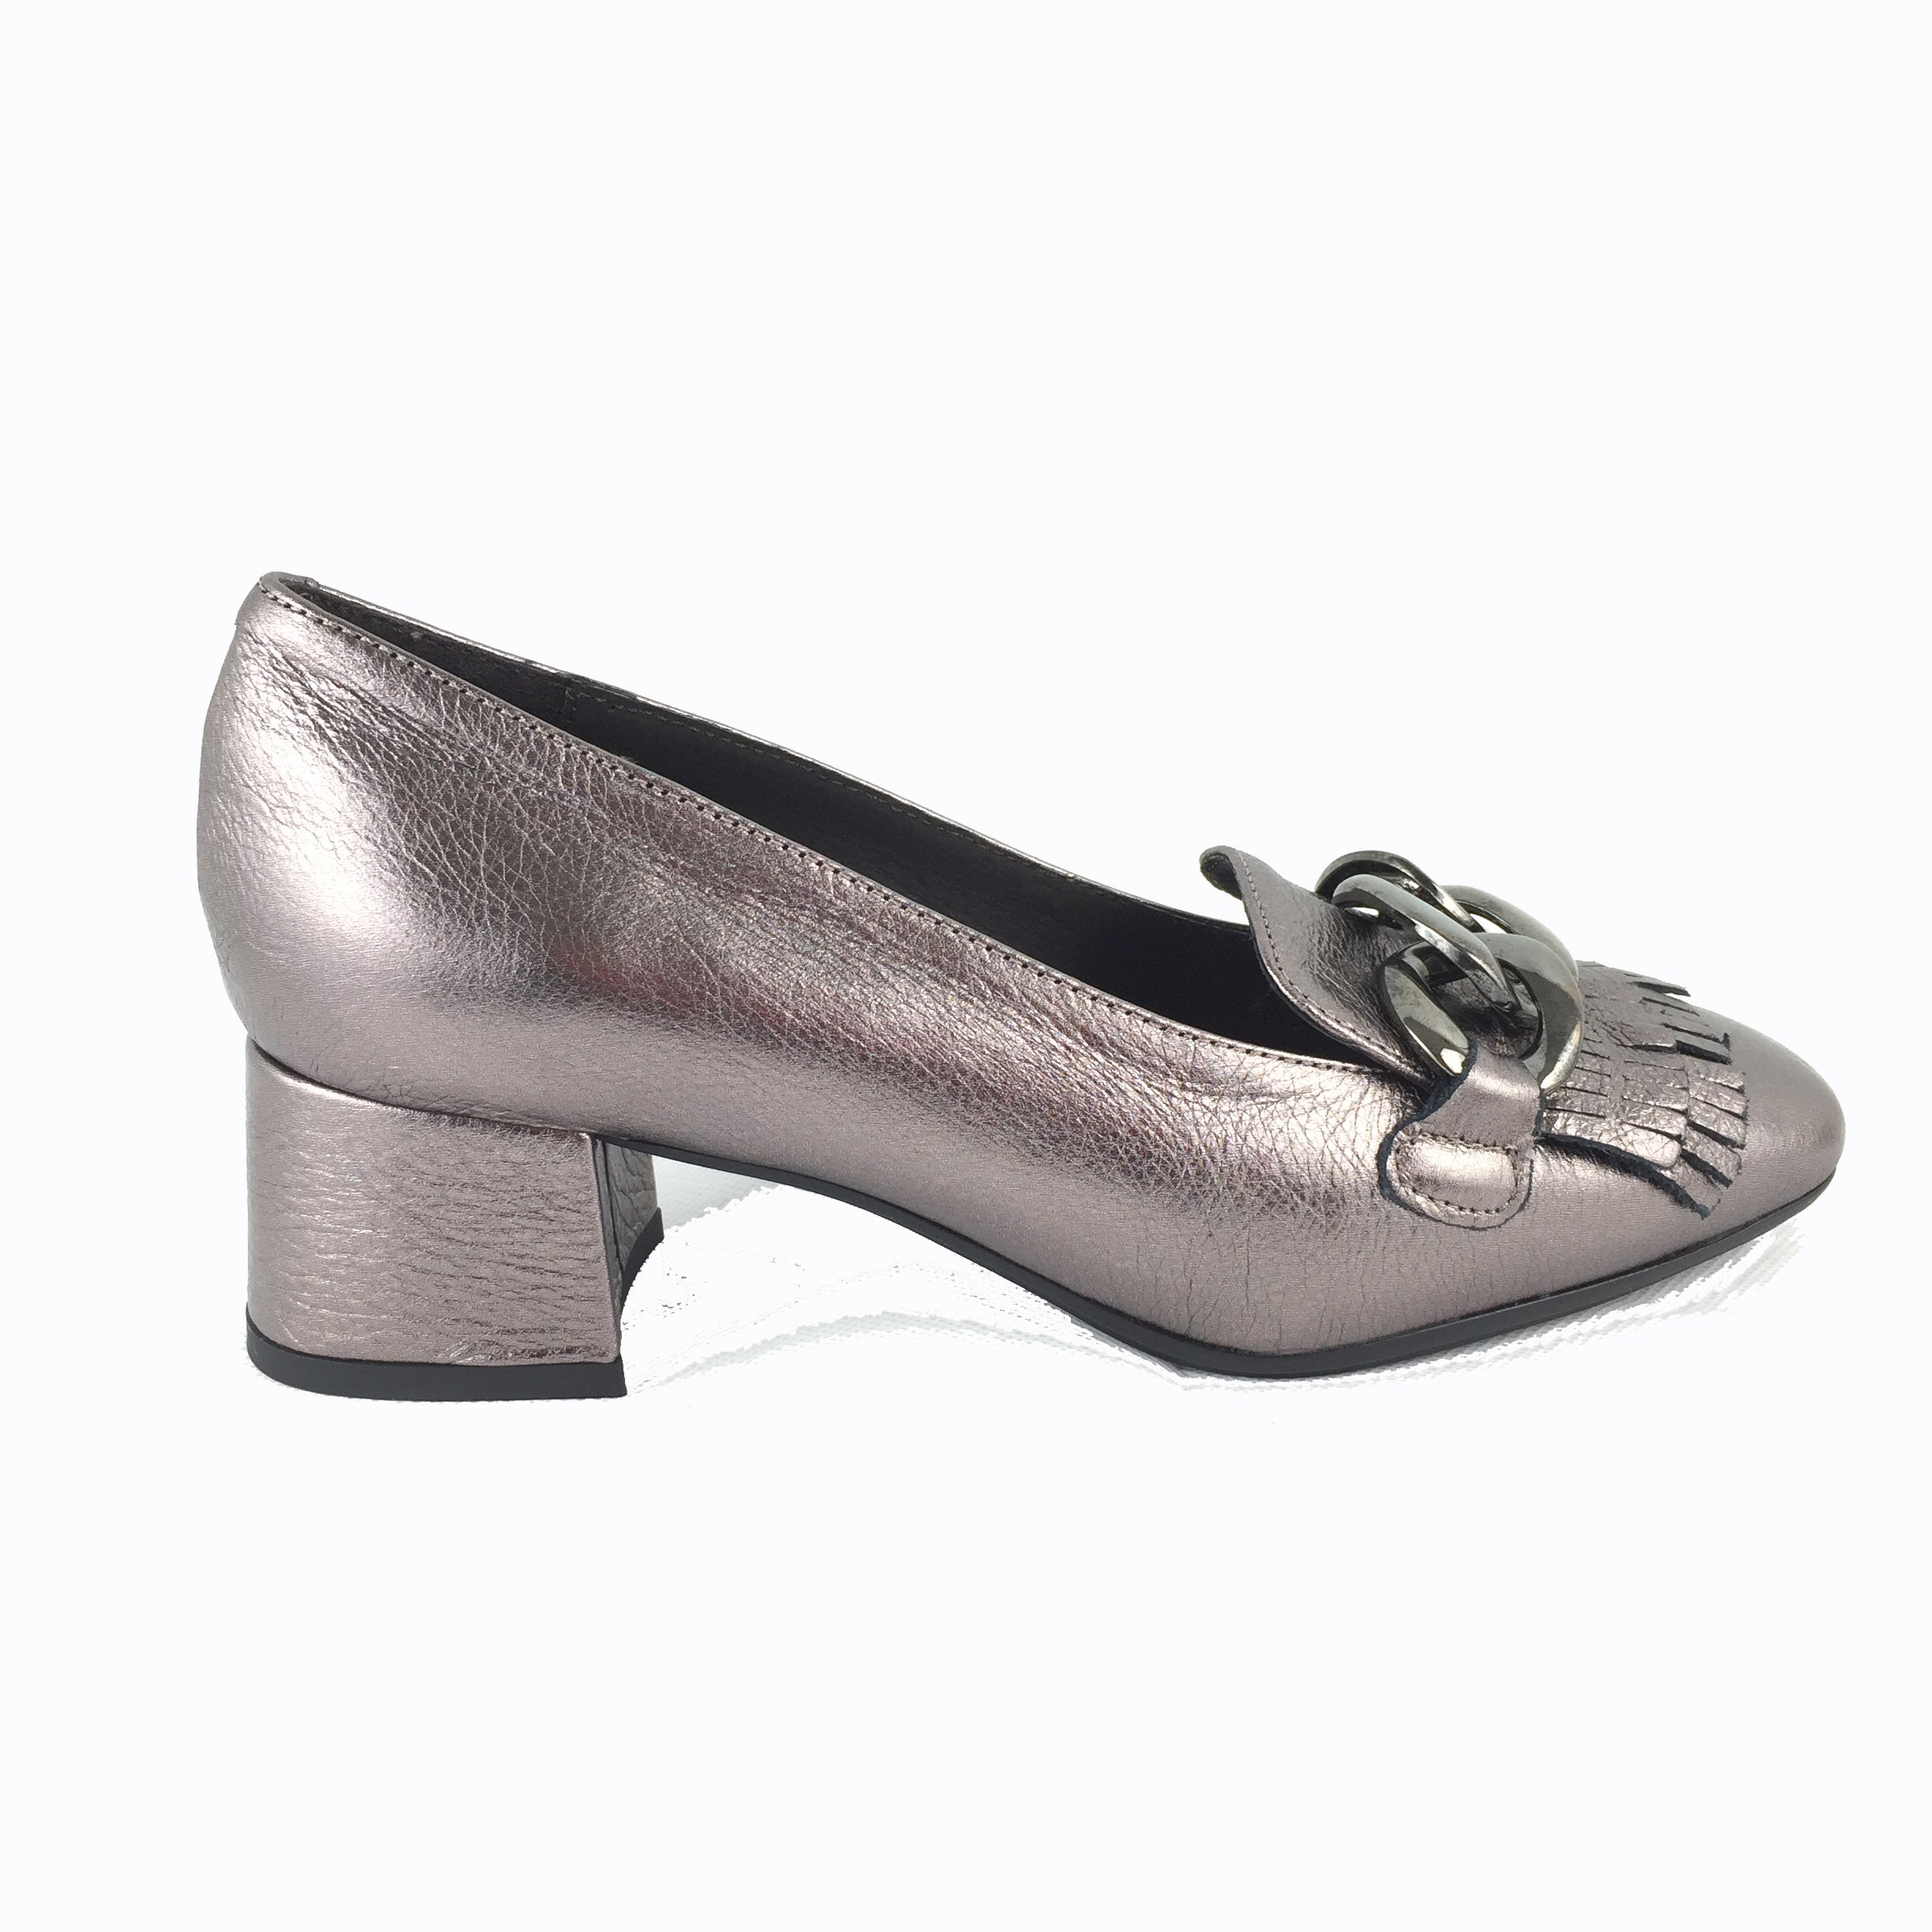 467569b88e5 Cherrypic bronze metallic Gucci inspired heeled loafer. Front silver buckle  with fringe design underneath.